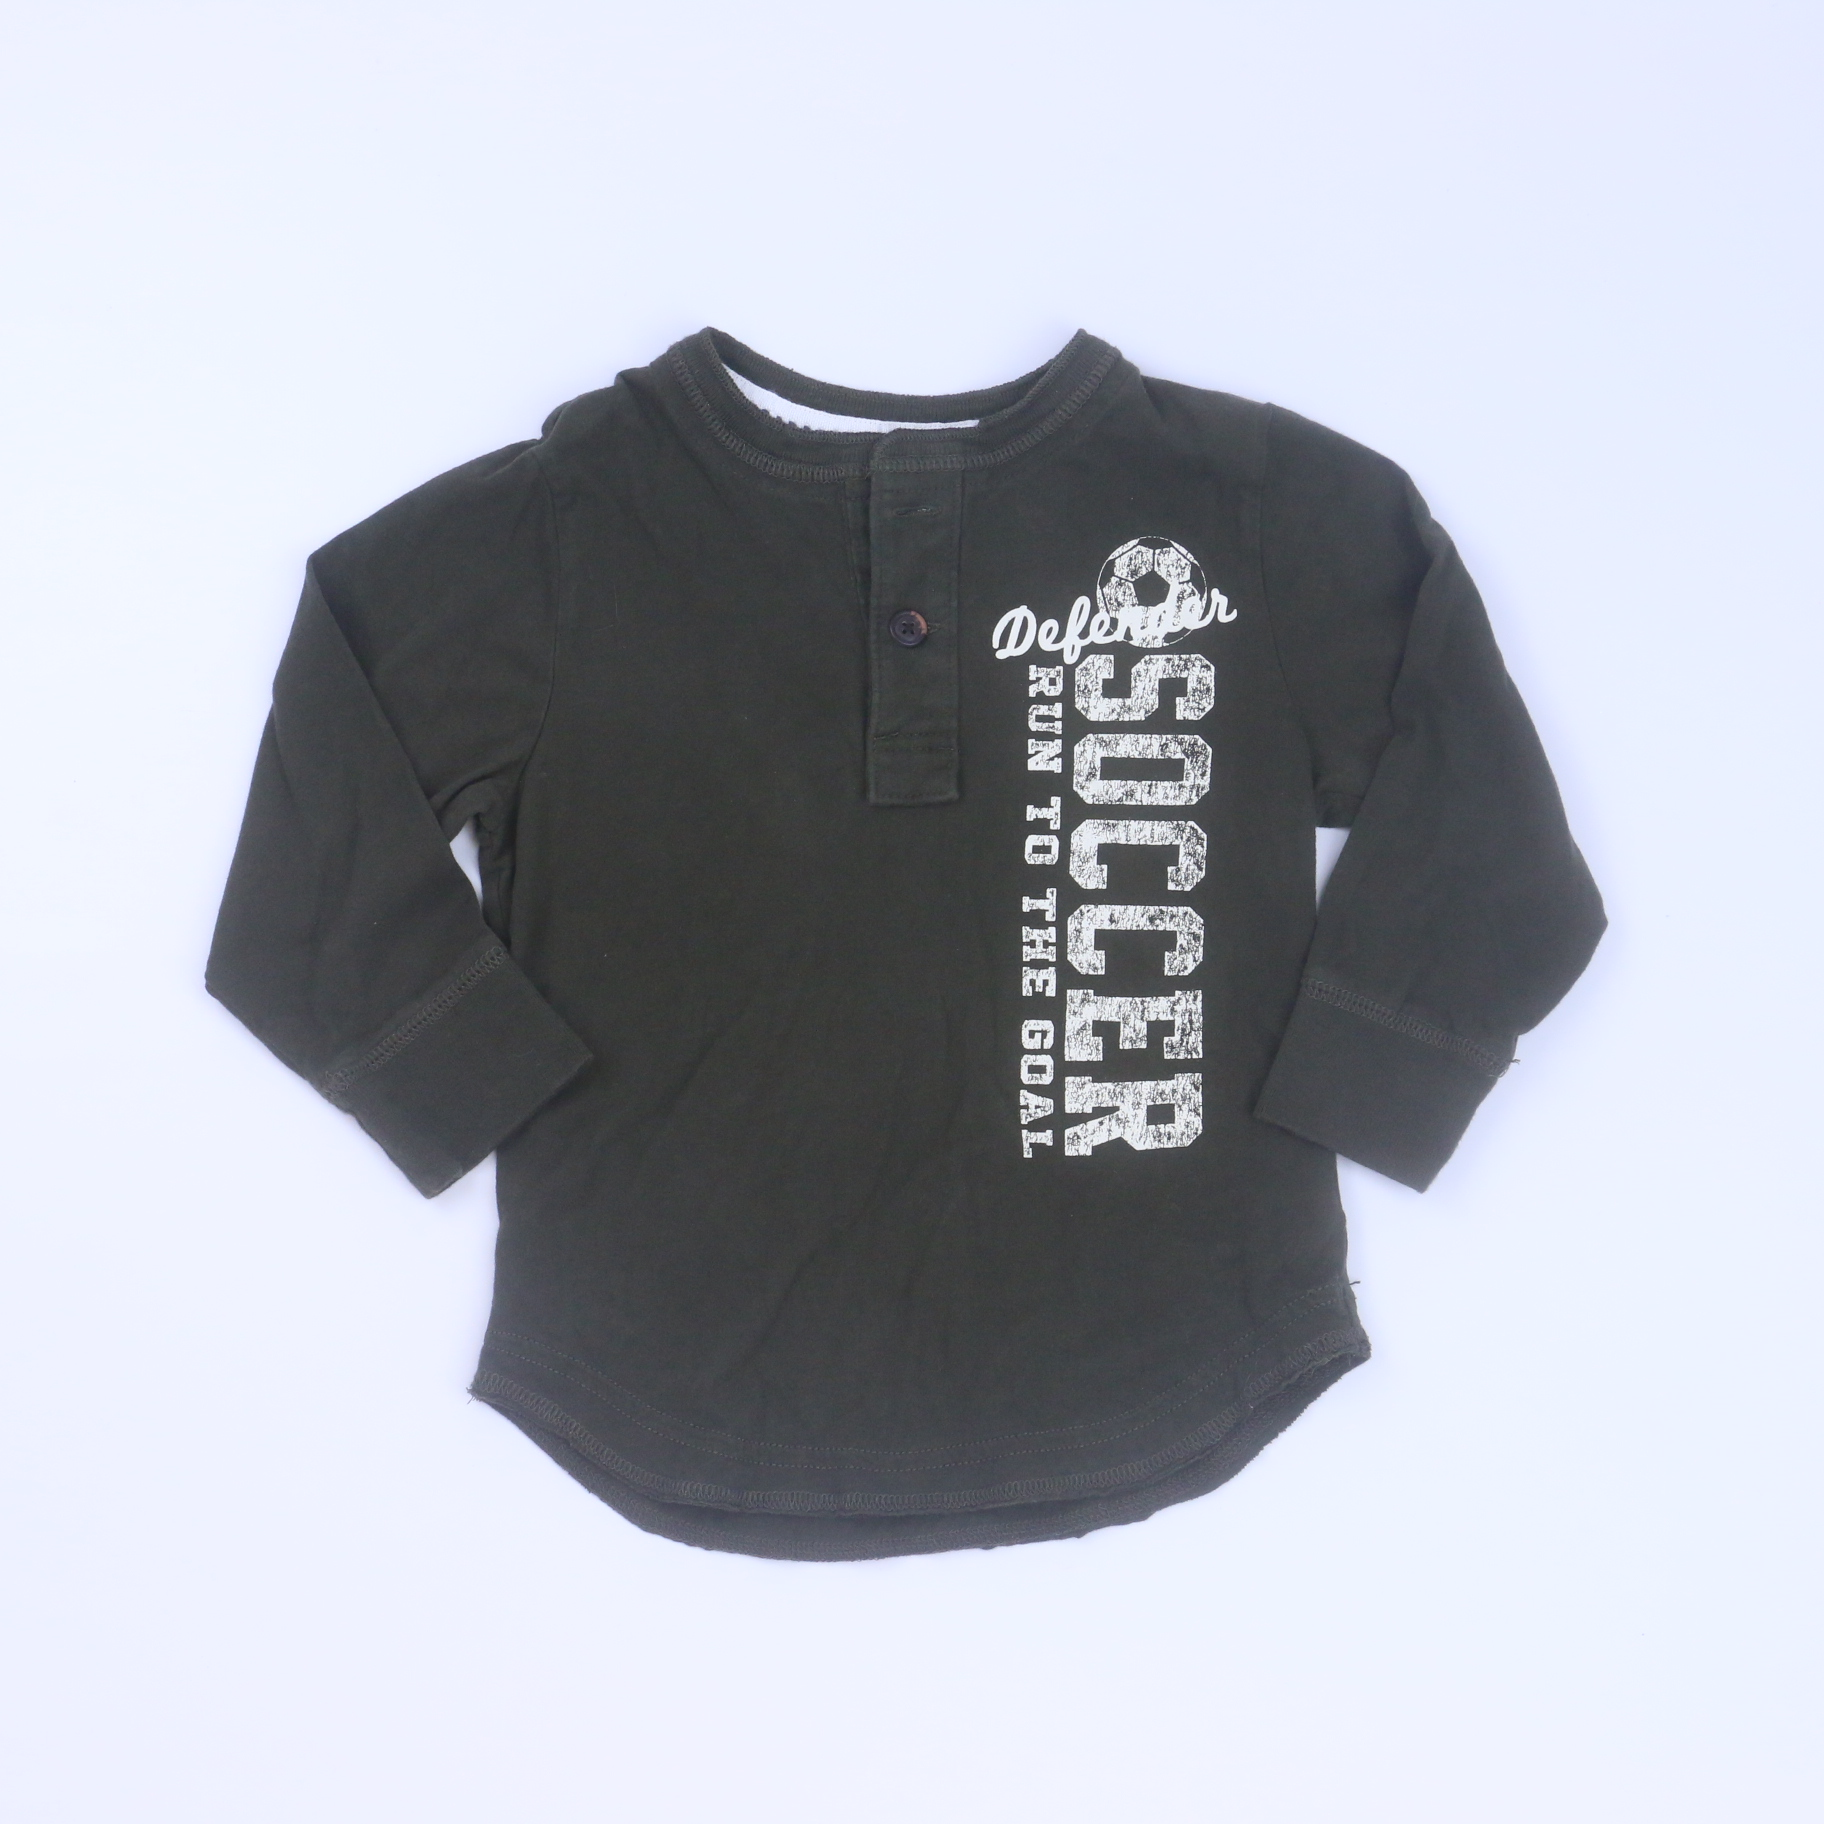 89b9411c2 Long Sleeve T-Shirt size: 4T - The Swoondle Society